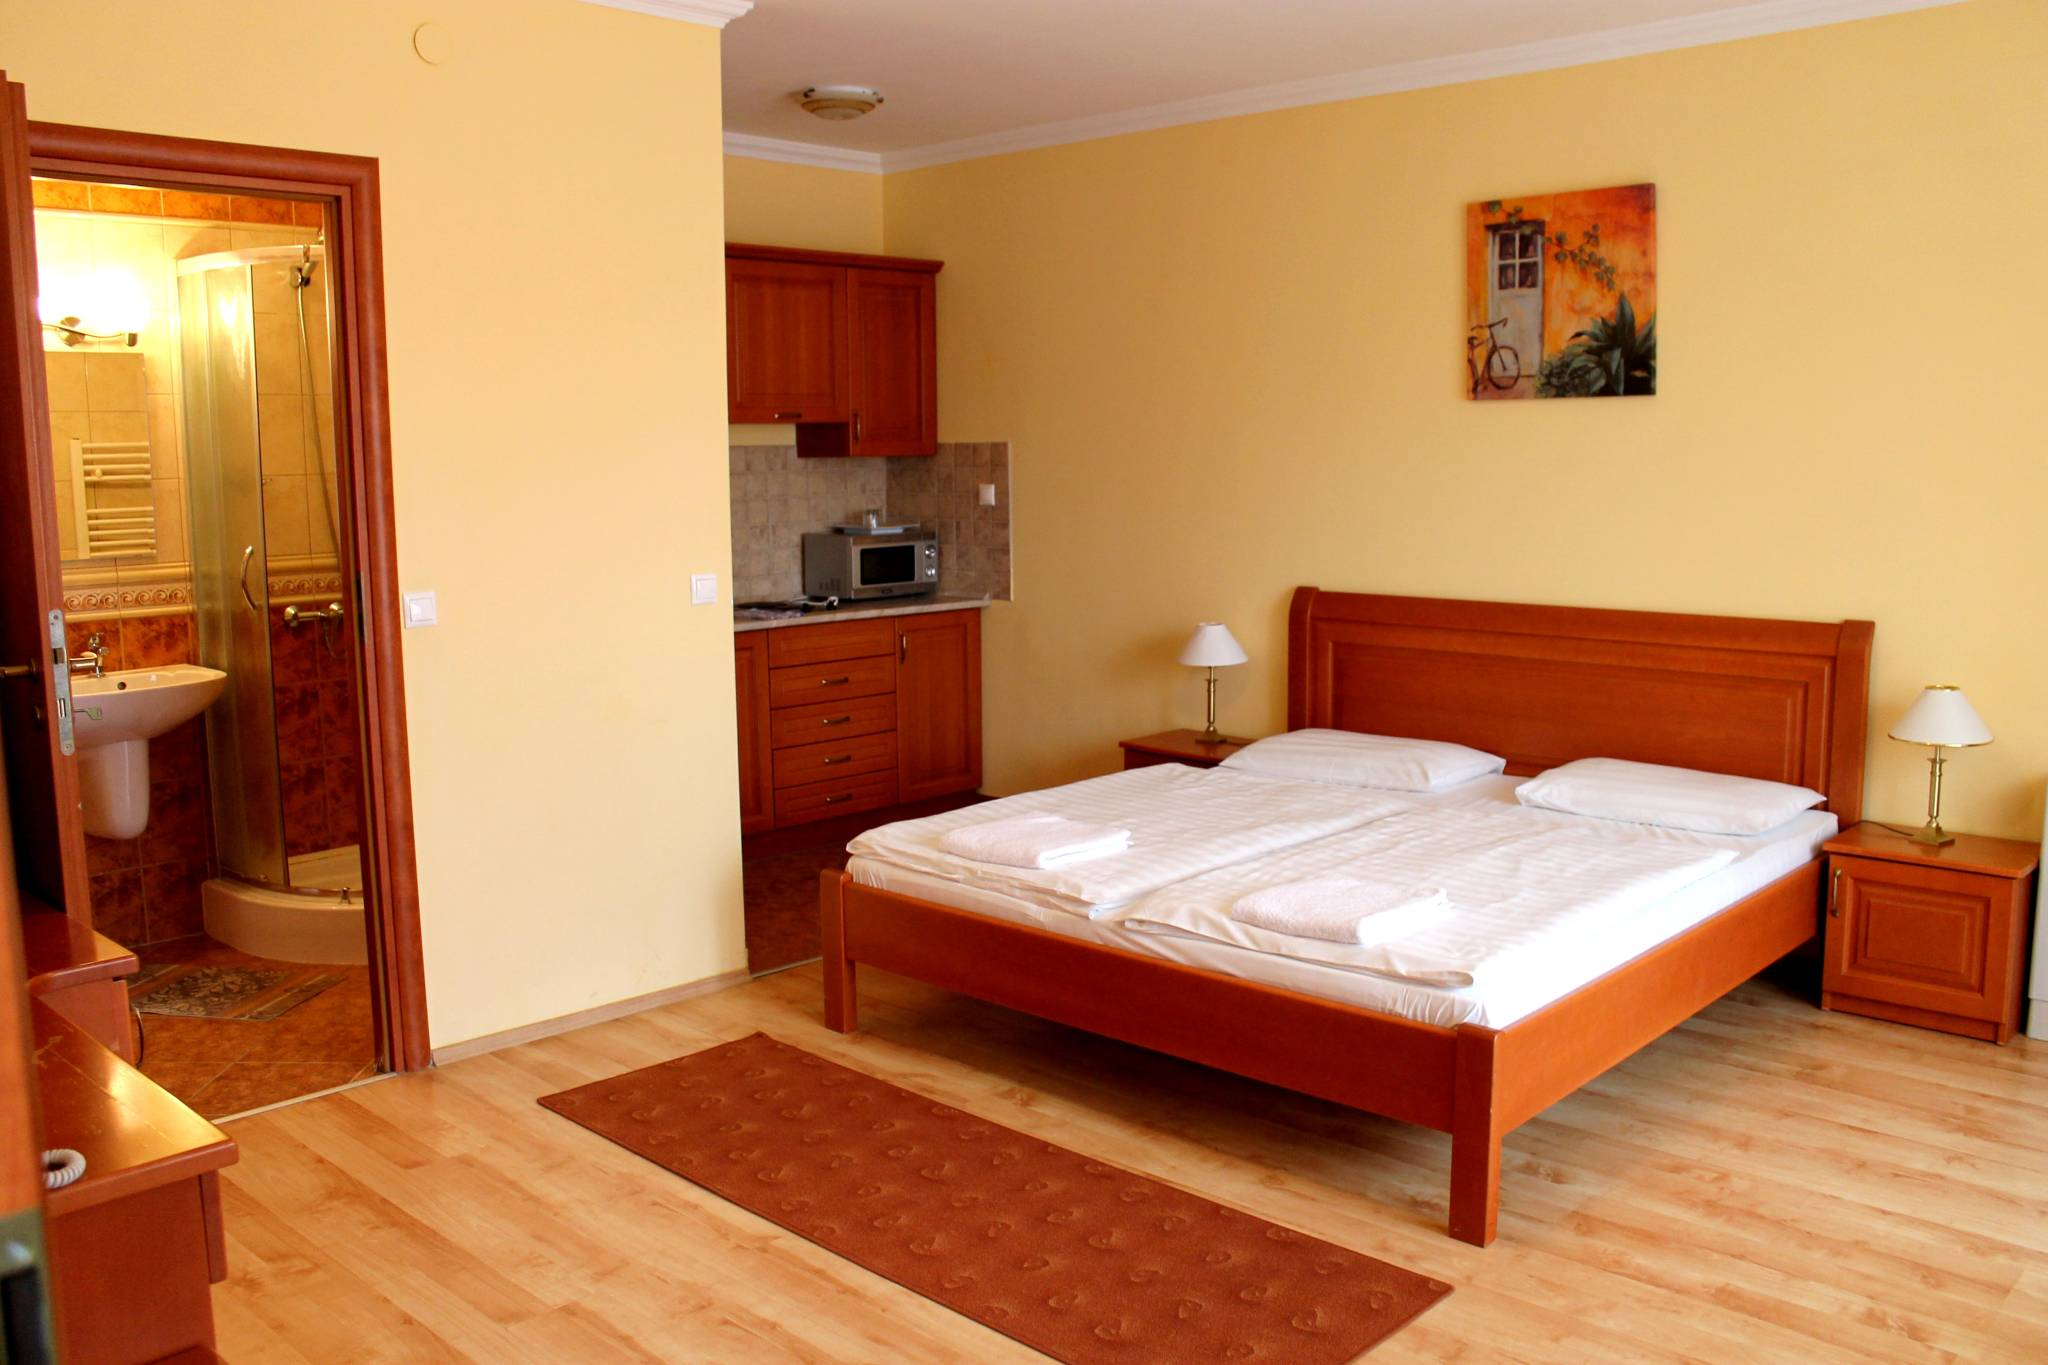 Hotel Jrja Hajdszoboszl - Franciagyas apartman